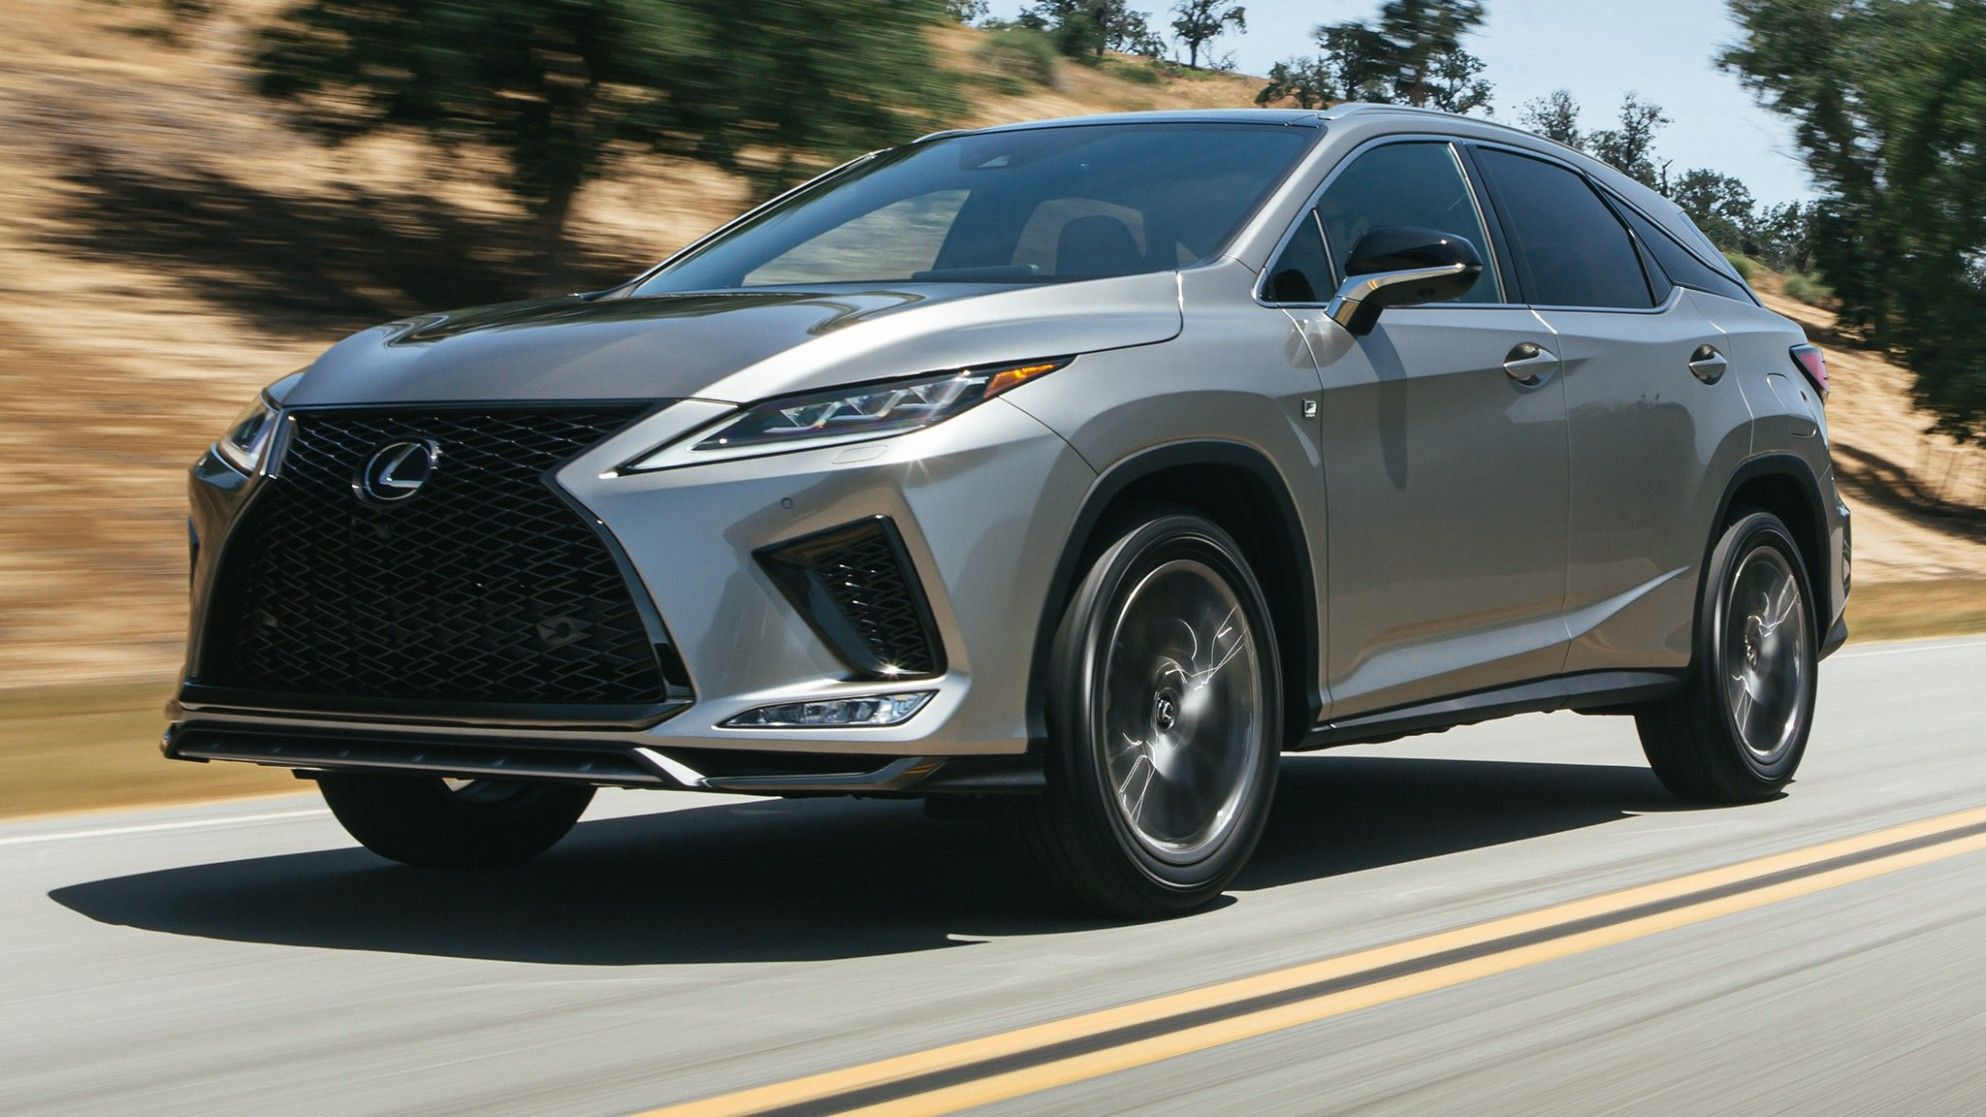 2021 Lexus Rx 350 F Sport Suv Design Is So Famous, But Why?